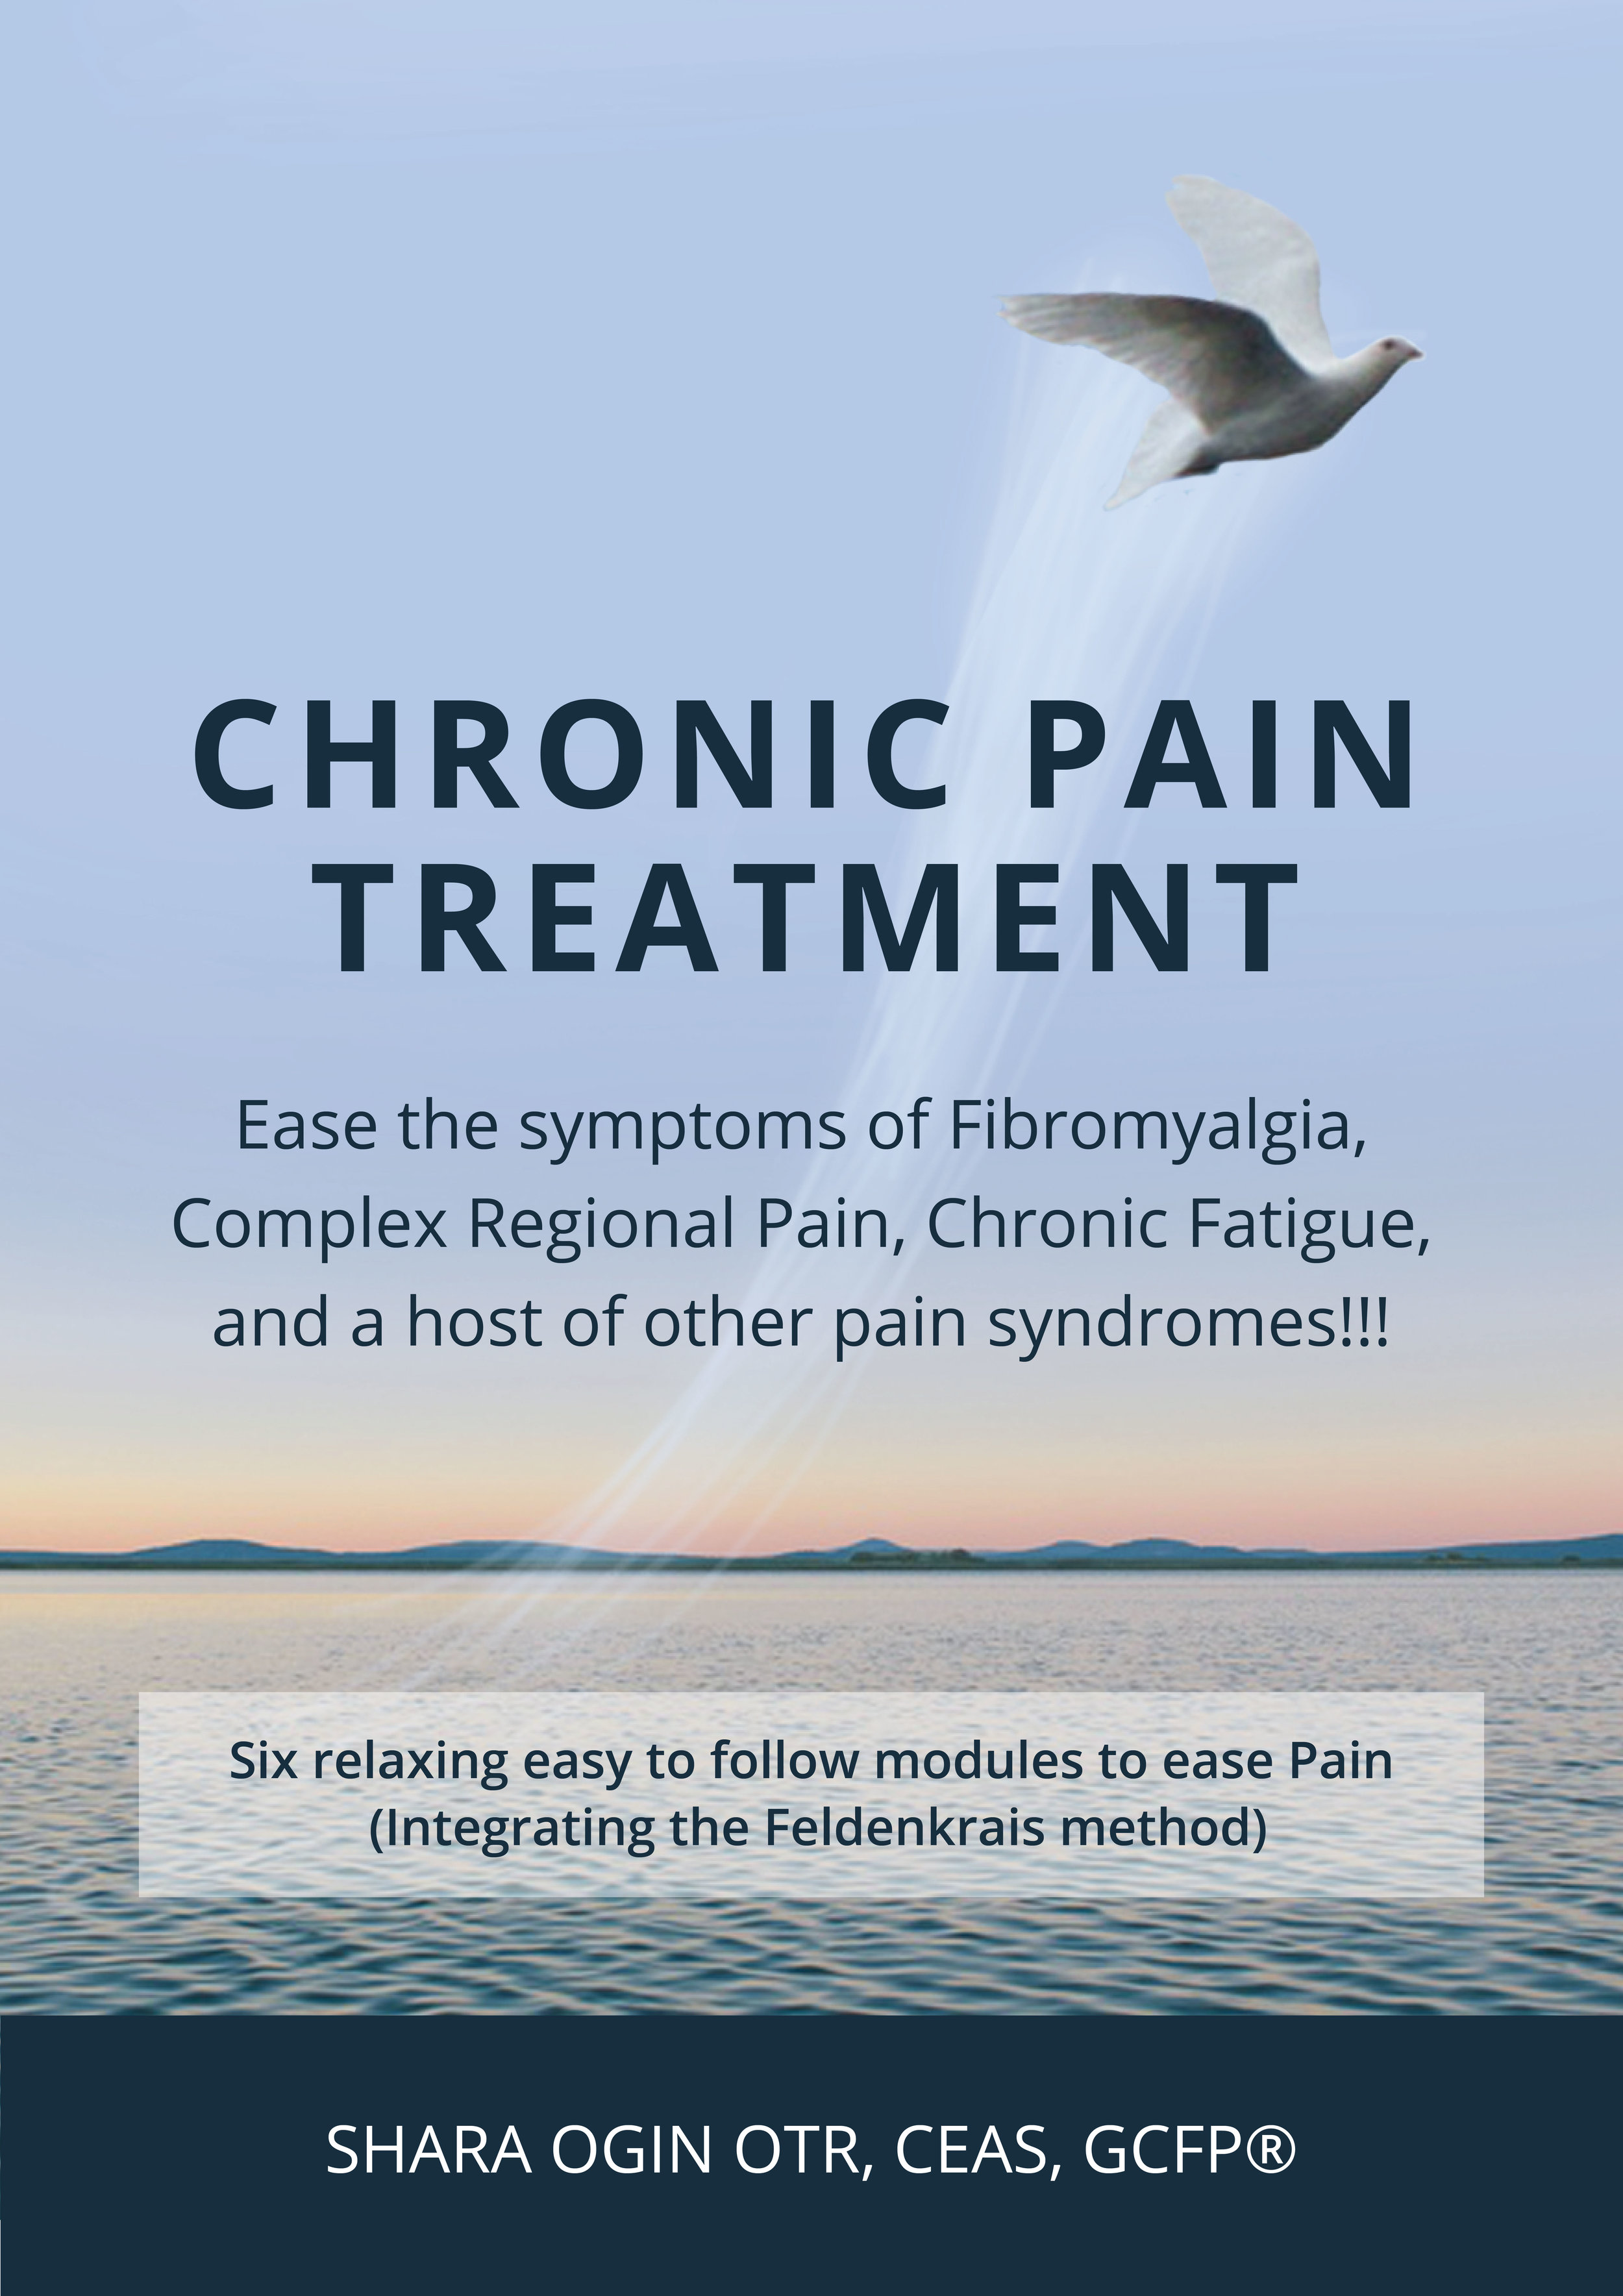 Chronic Pain Cover 2-01.jpg